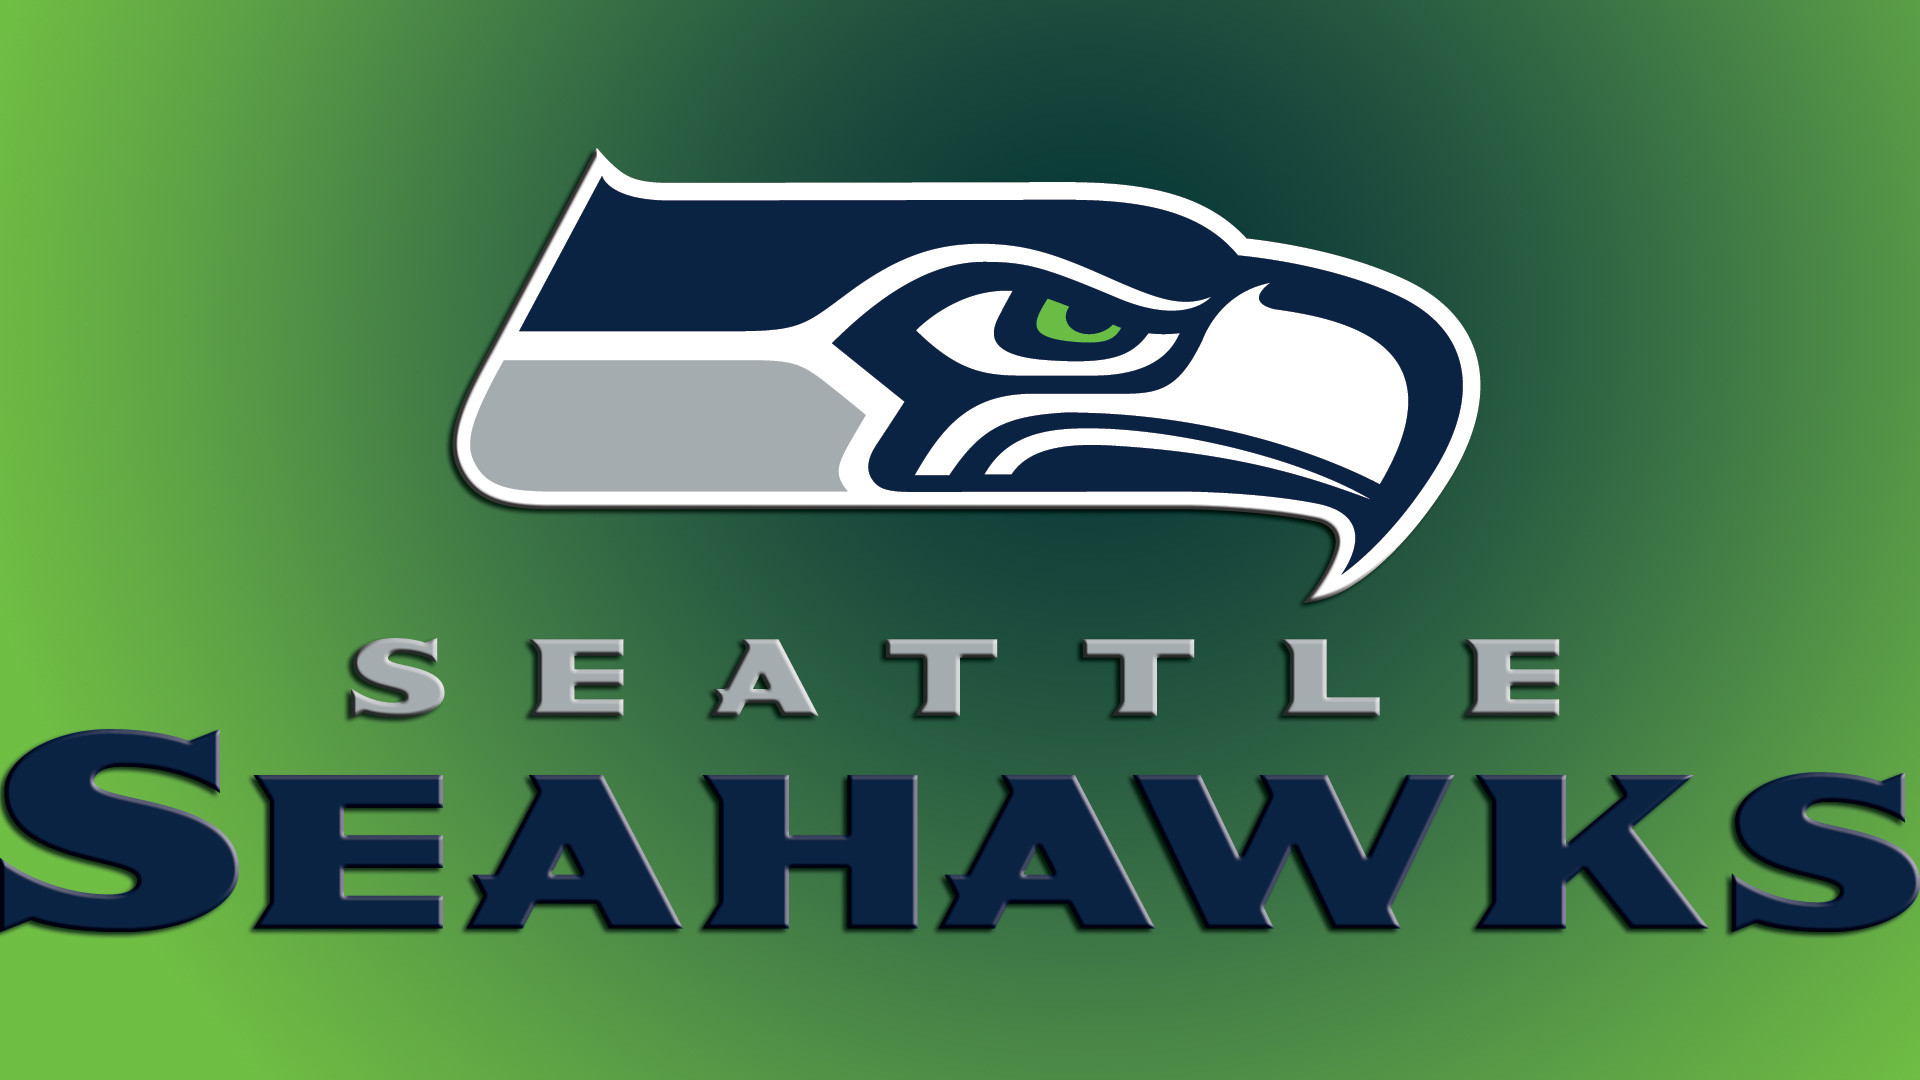 1920x1080 The-first-of-many-Seahawks-Central-wallpaper-wp64010051